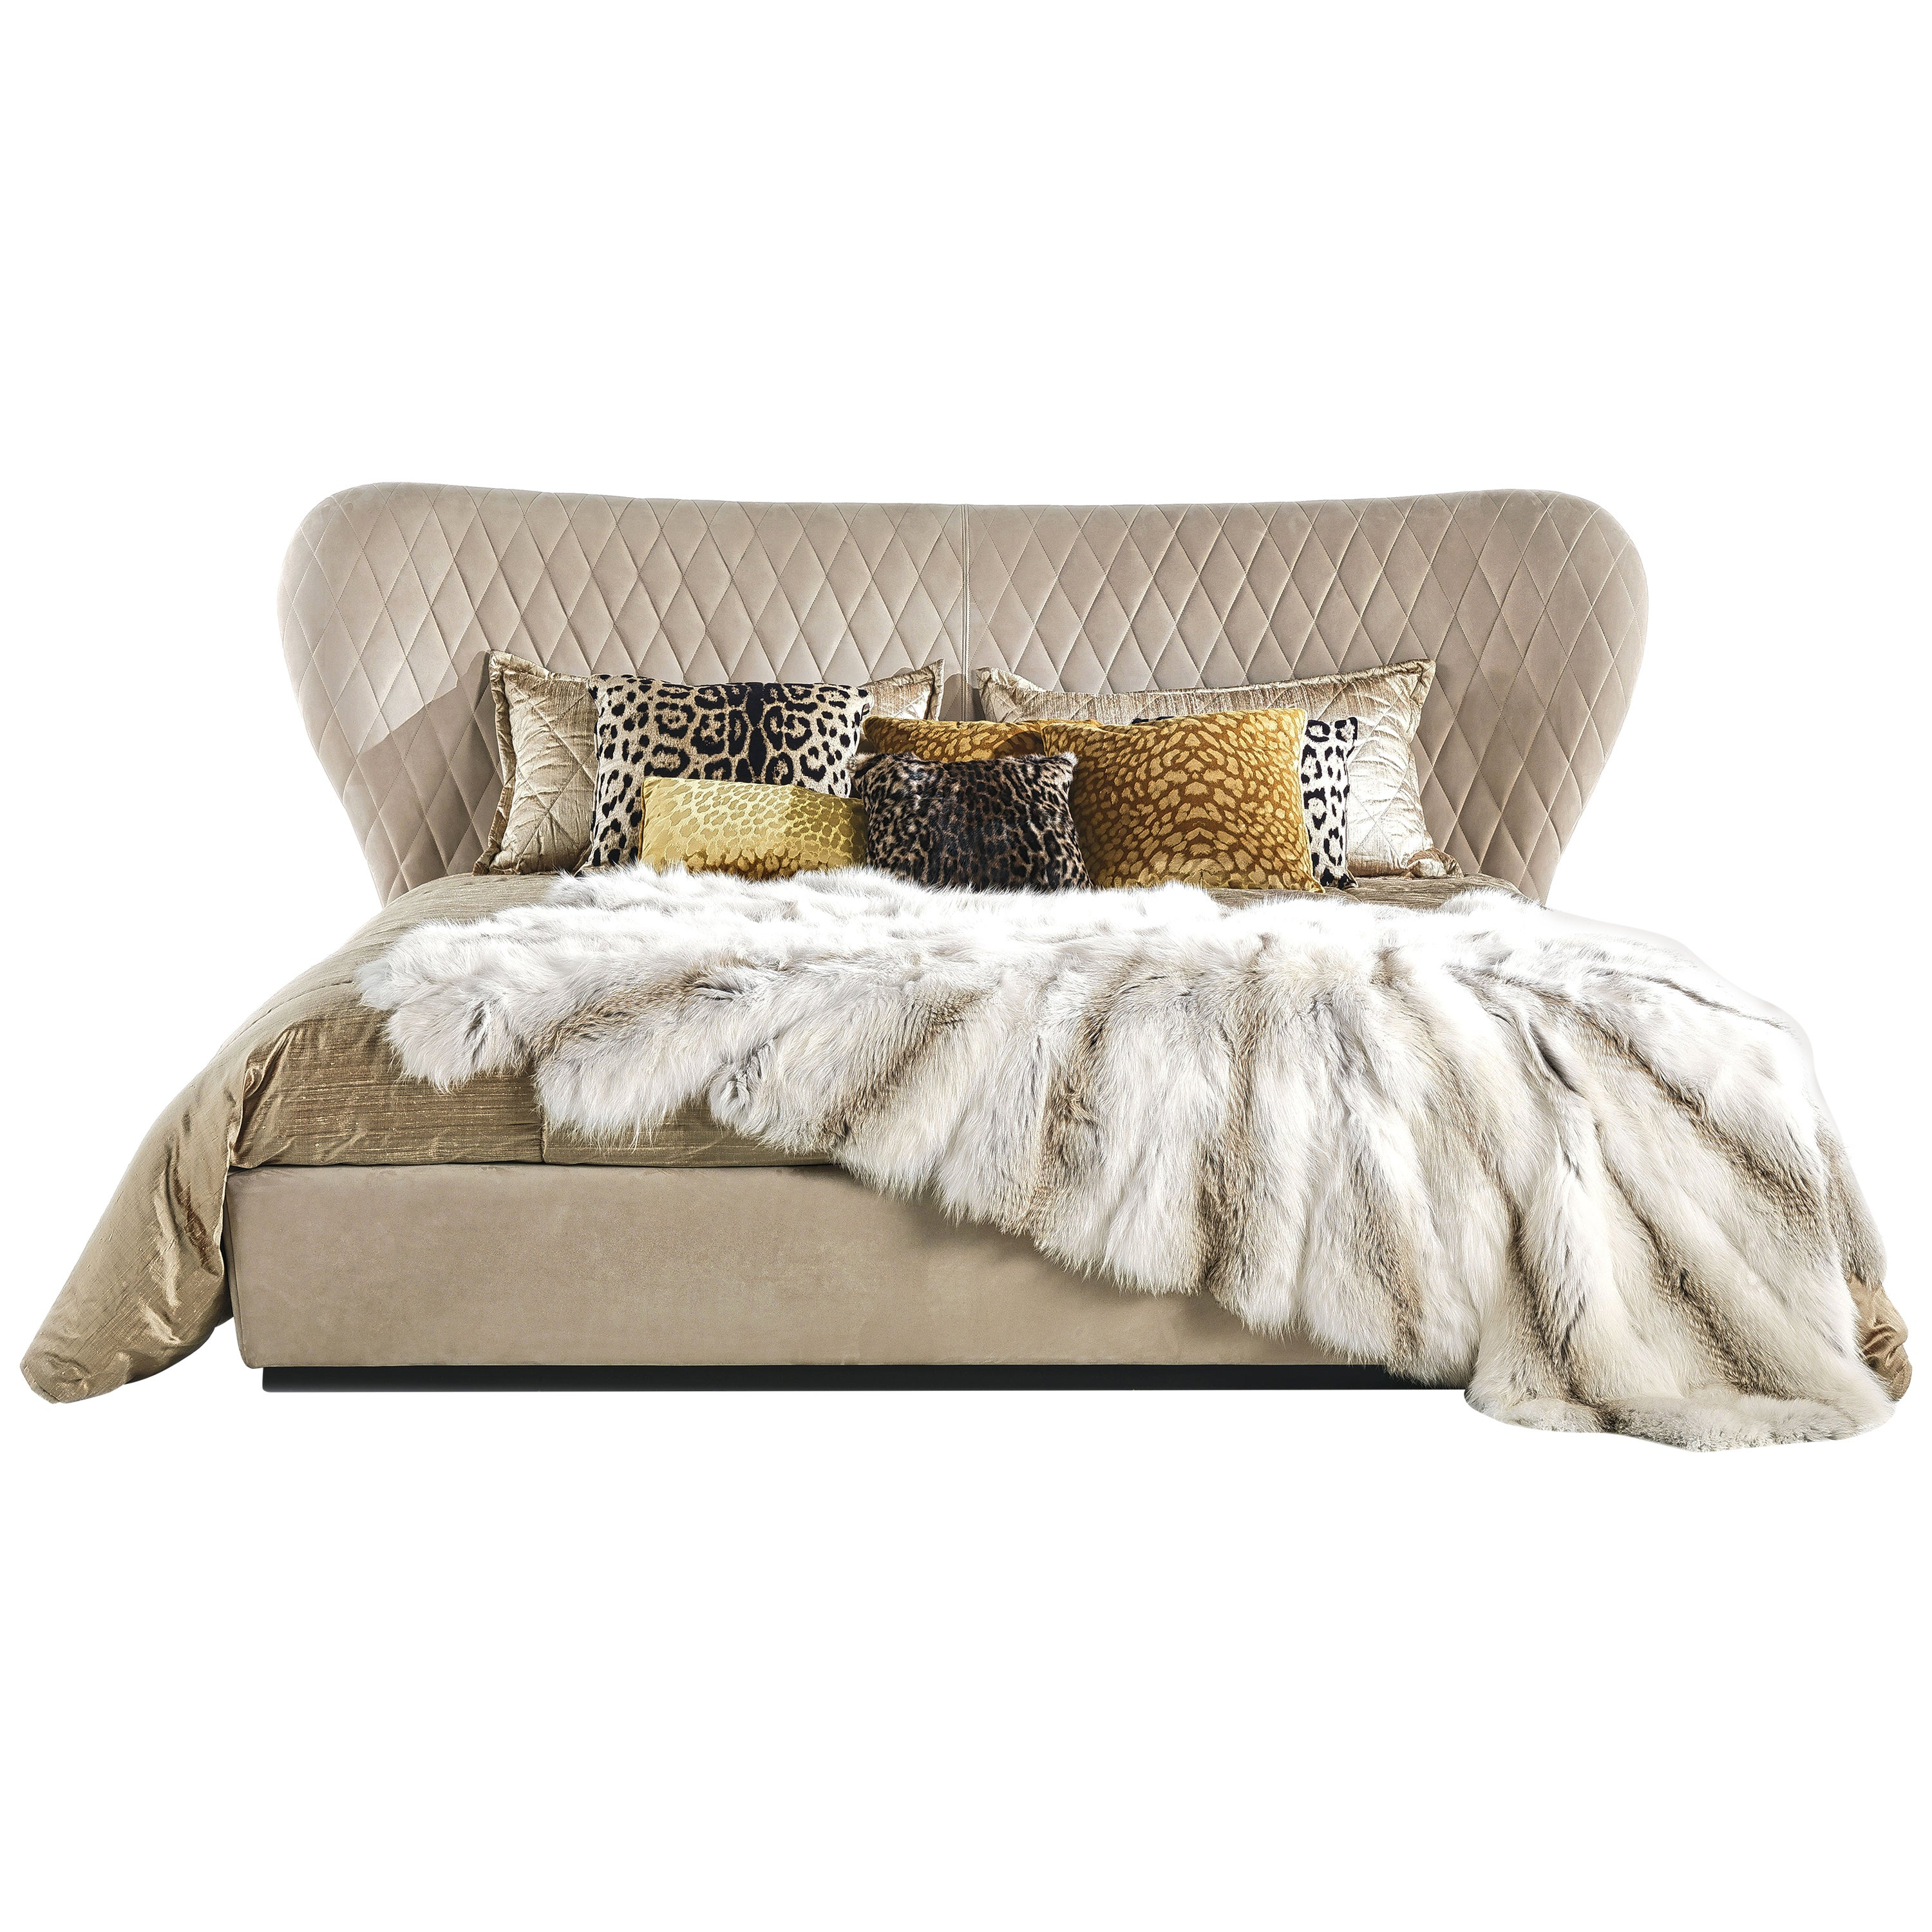 Grace Bed in Leather by Roberto Cavalli Home Interiors